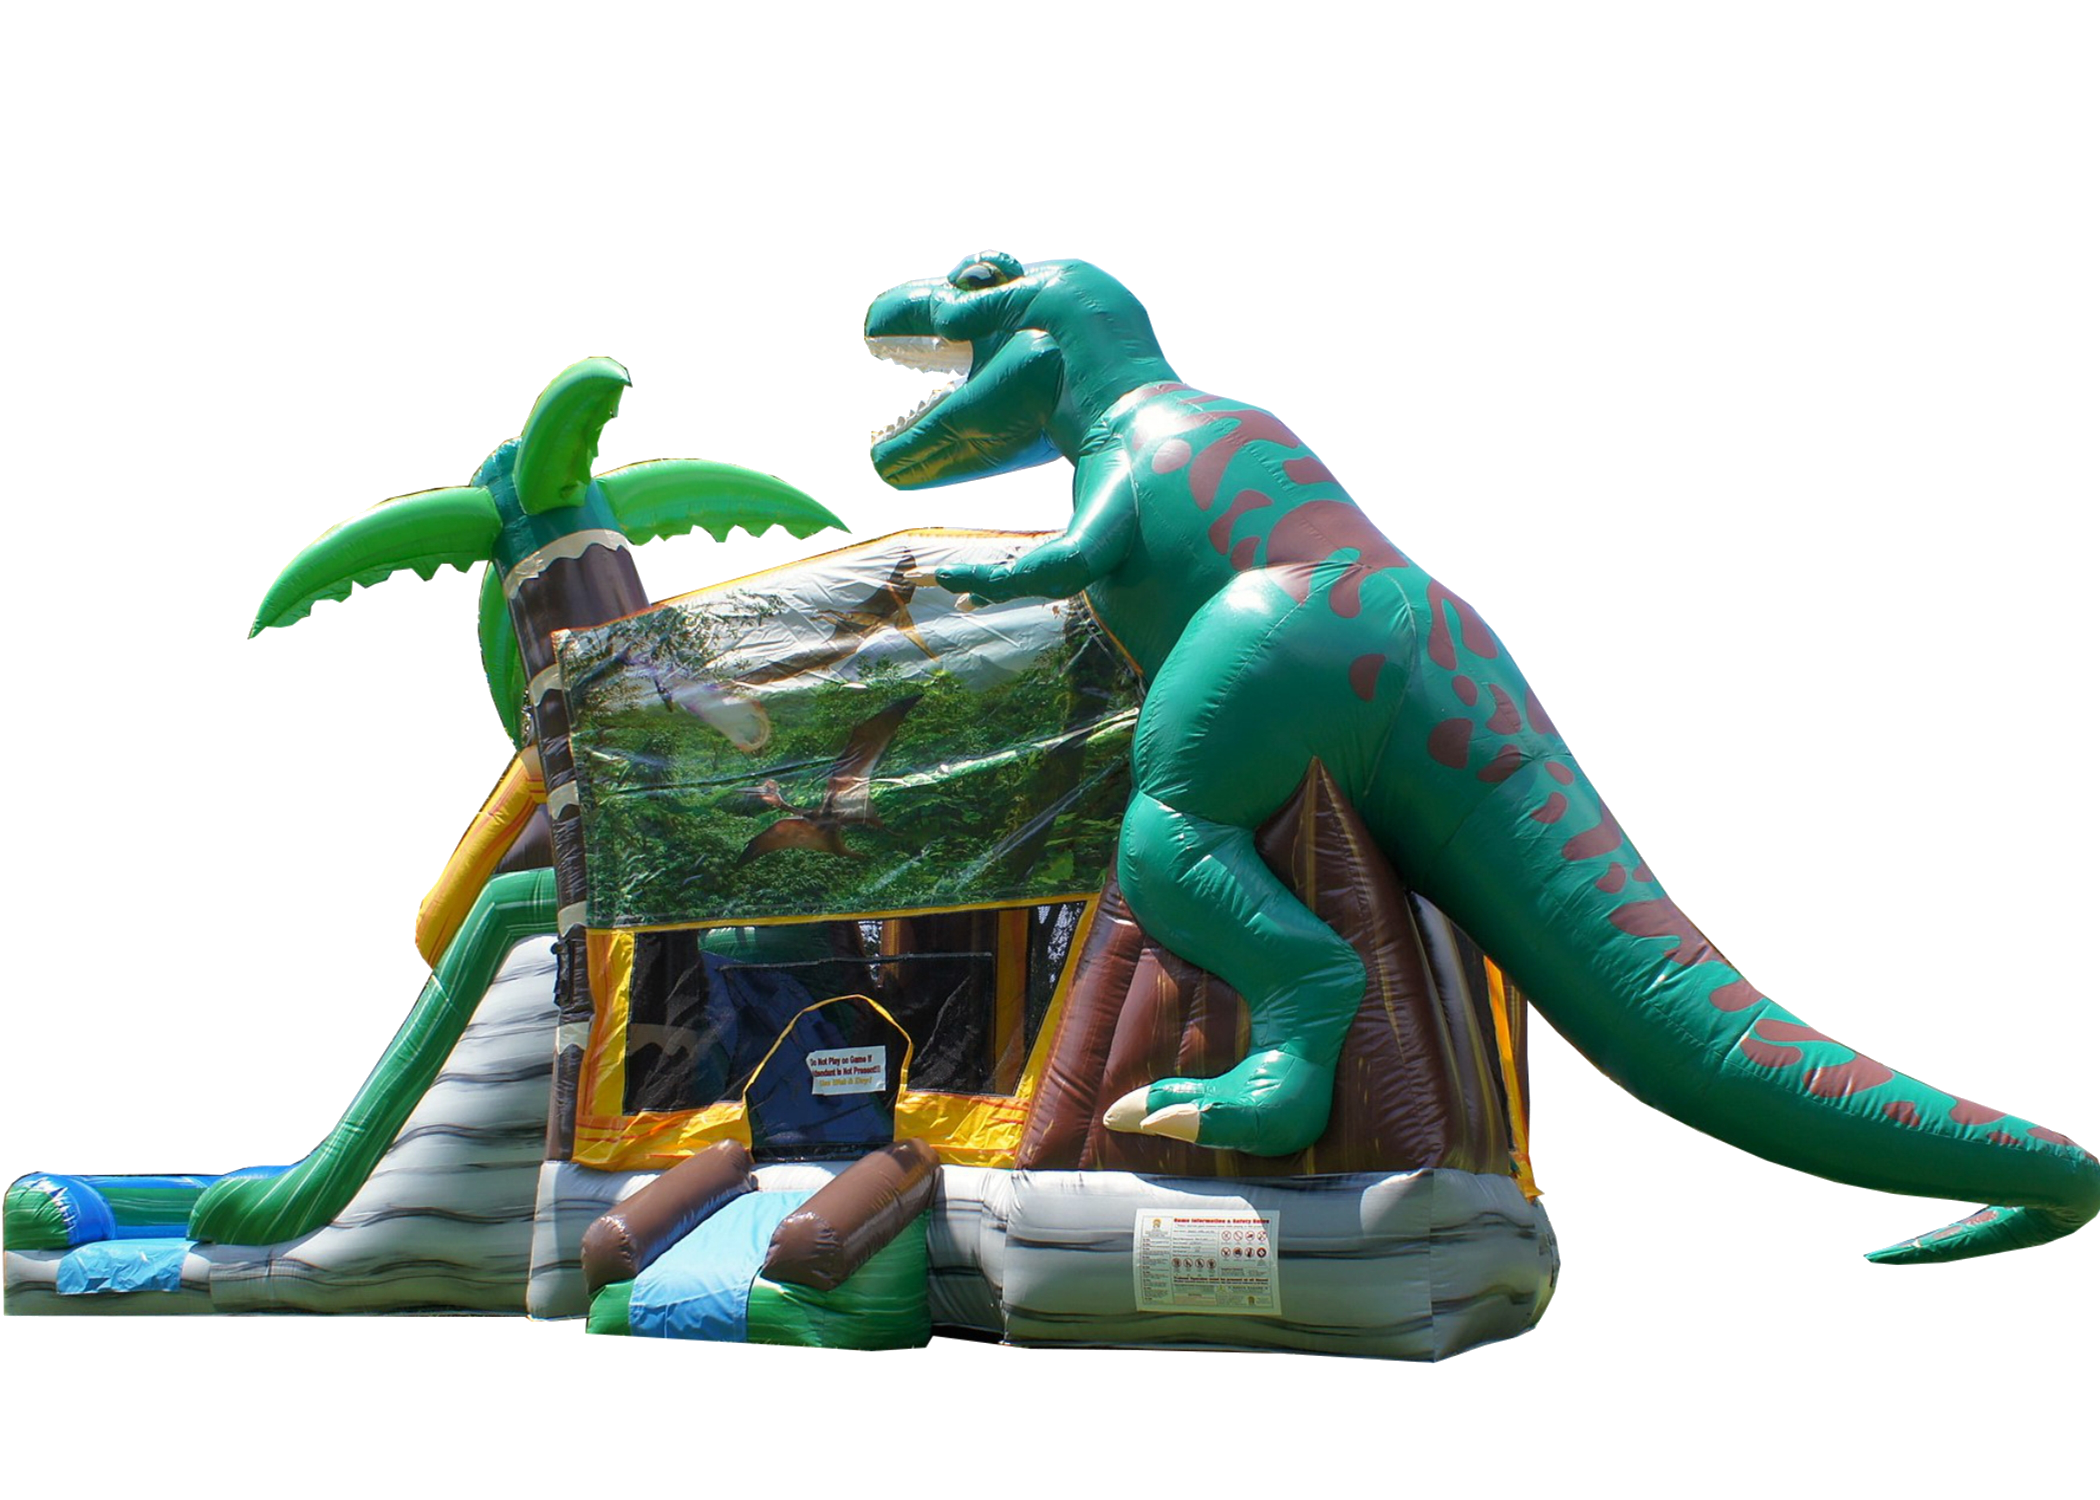 Dinosaur bounce house Nashville TN